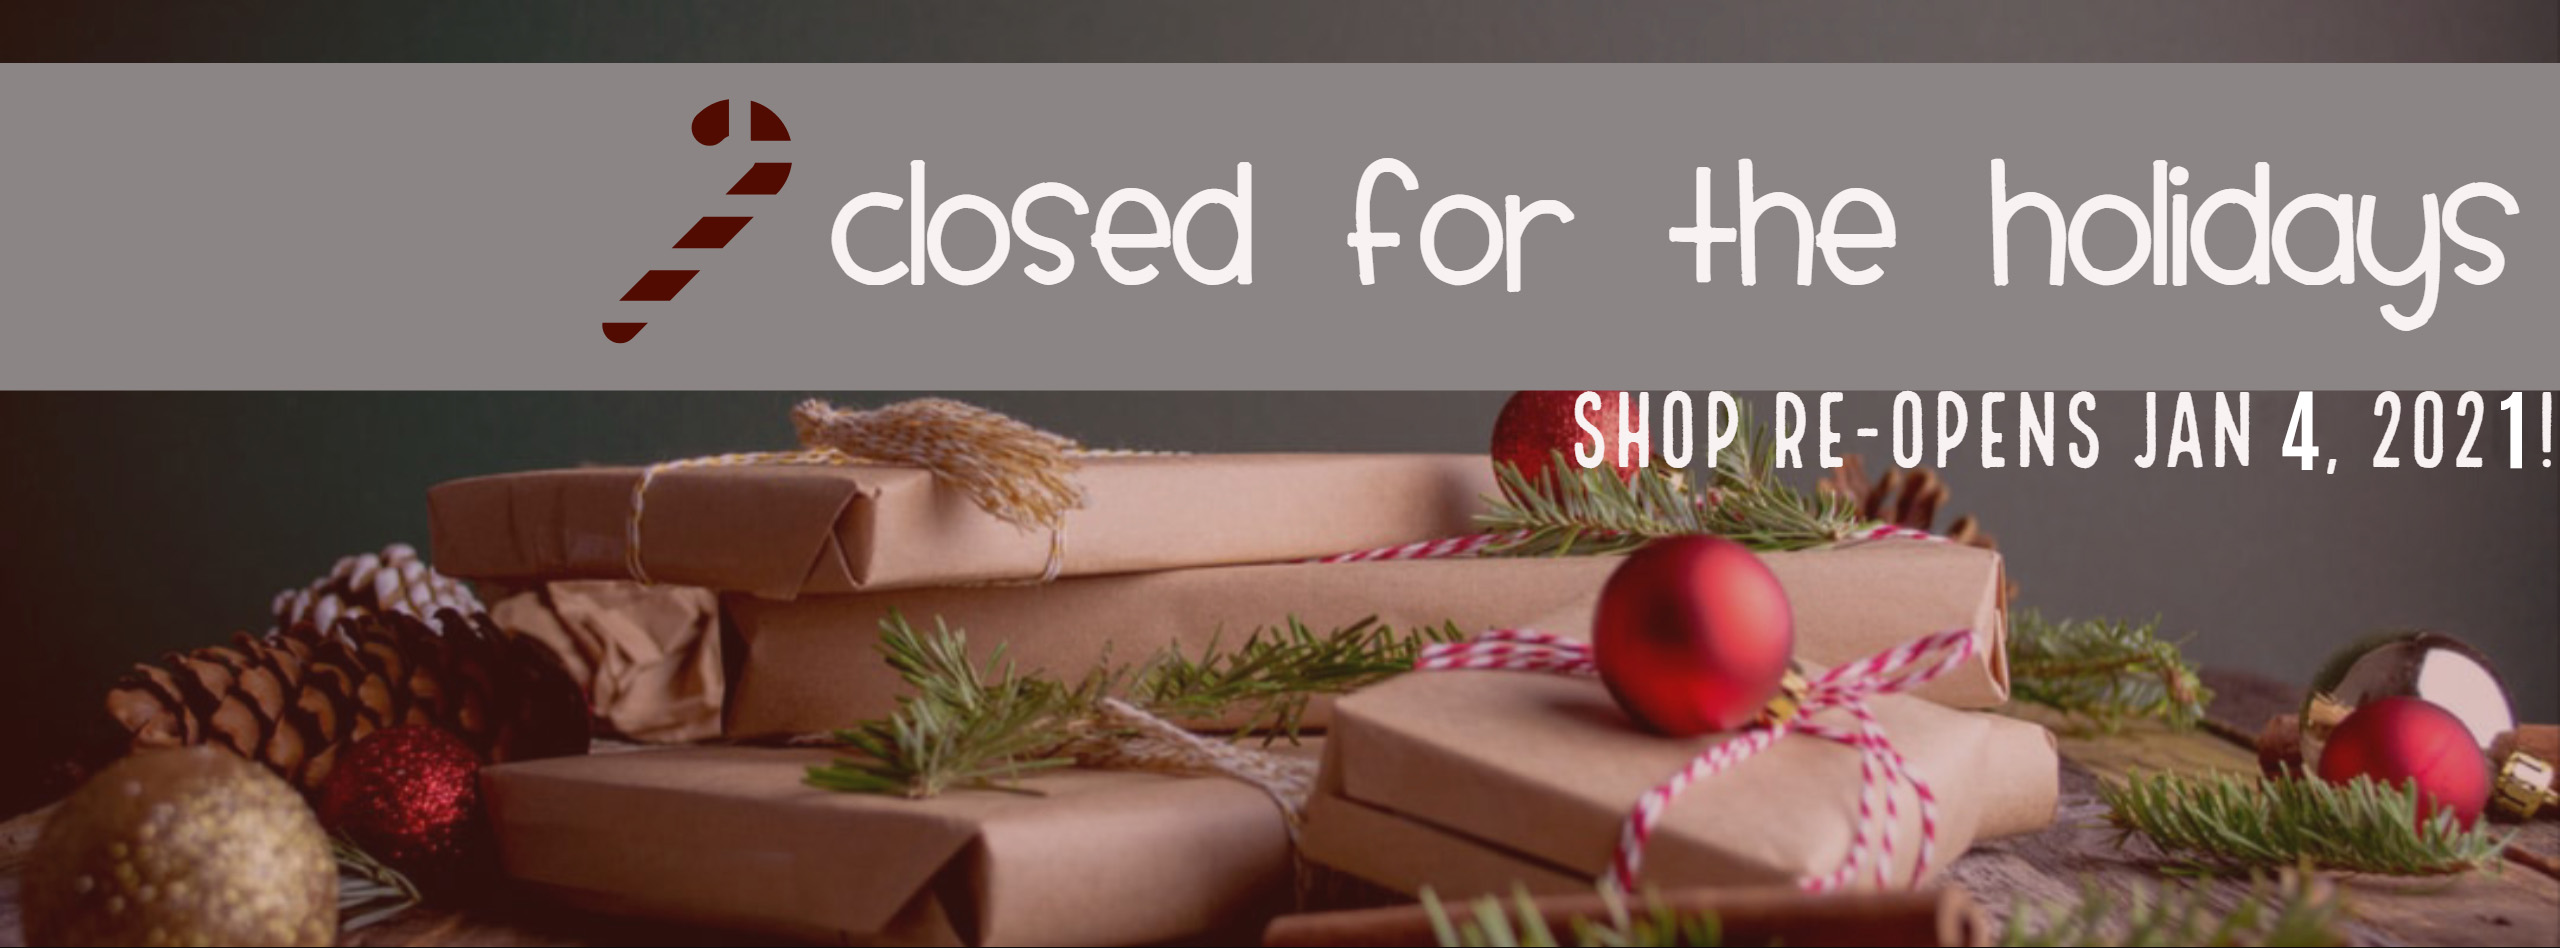 GEEKSOAP is closed temporarily for the holidays - shop re-opens Jan 4, 2021